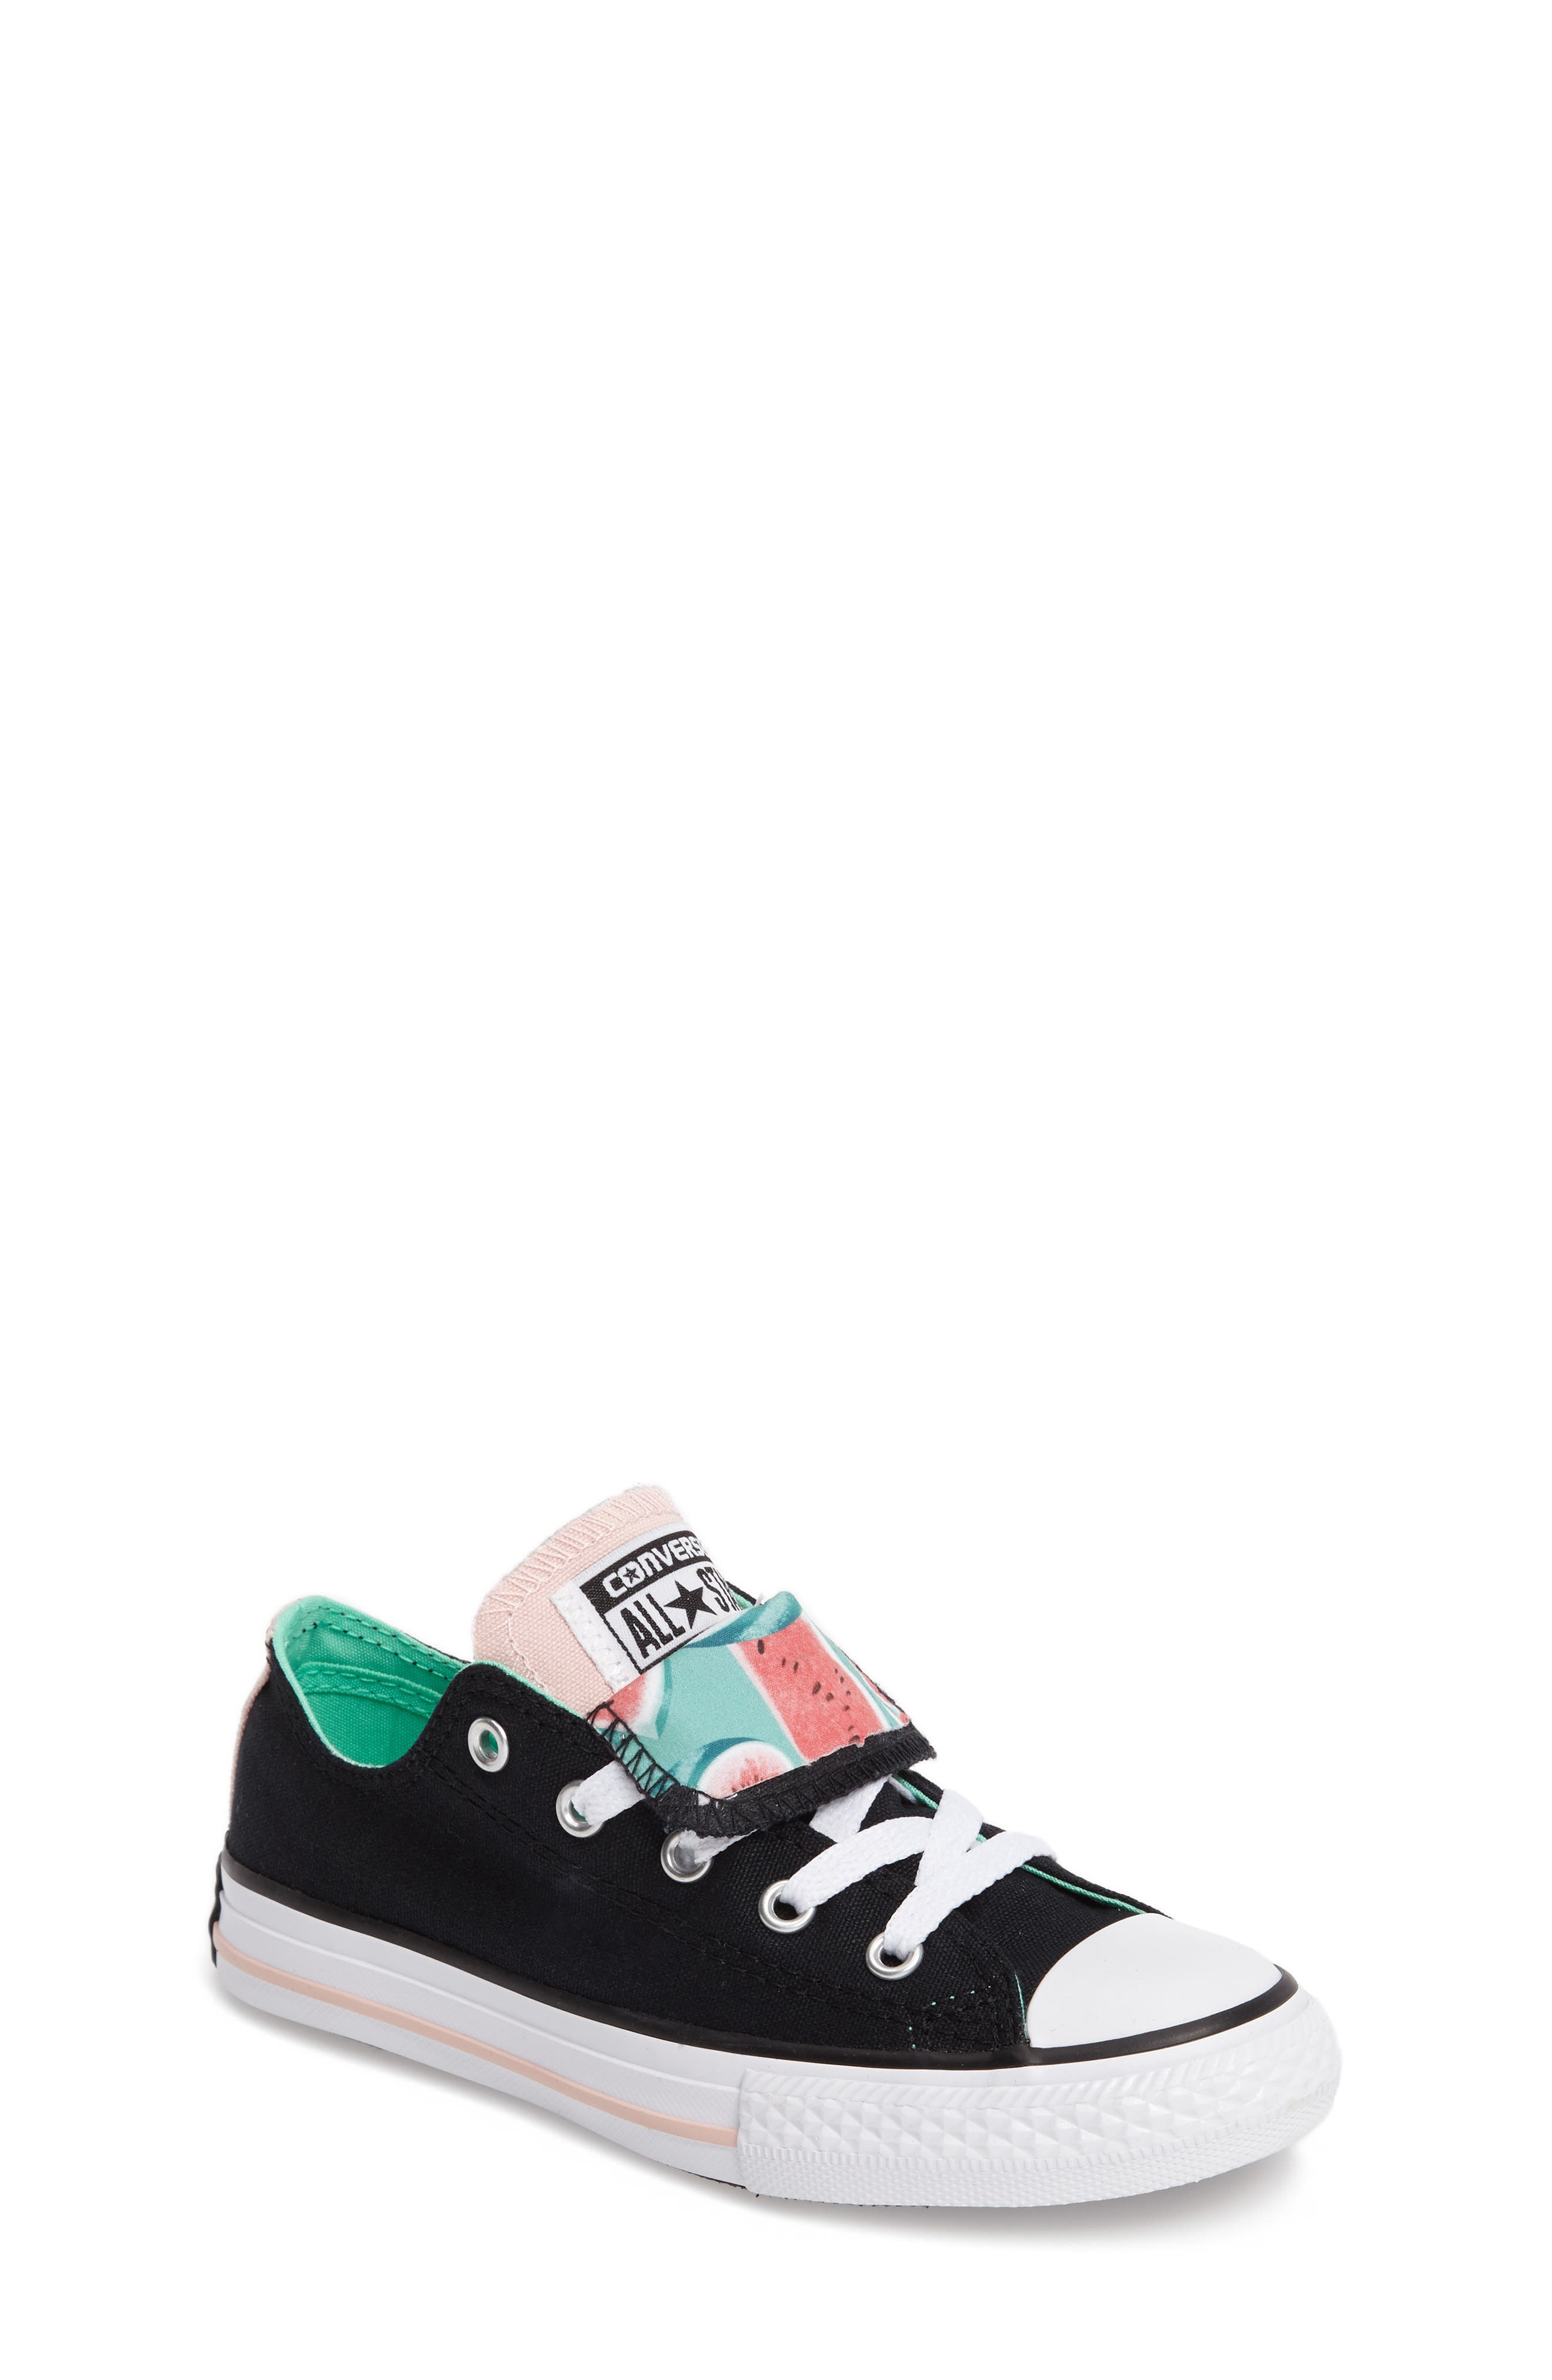 Chuck Taylor<sup>®</sup> All Star<sup>®</sup> Watermelon Print Sneaker,                             Main thumbnail 1, color,                             Black